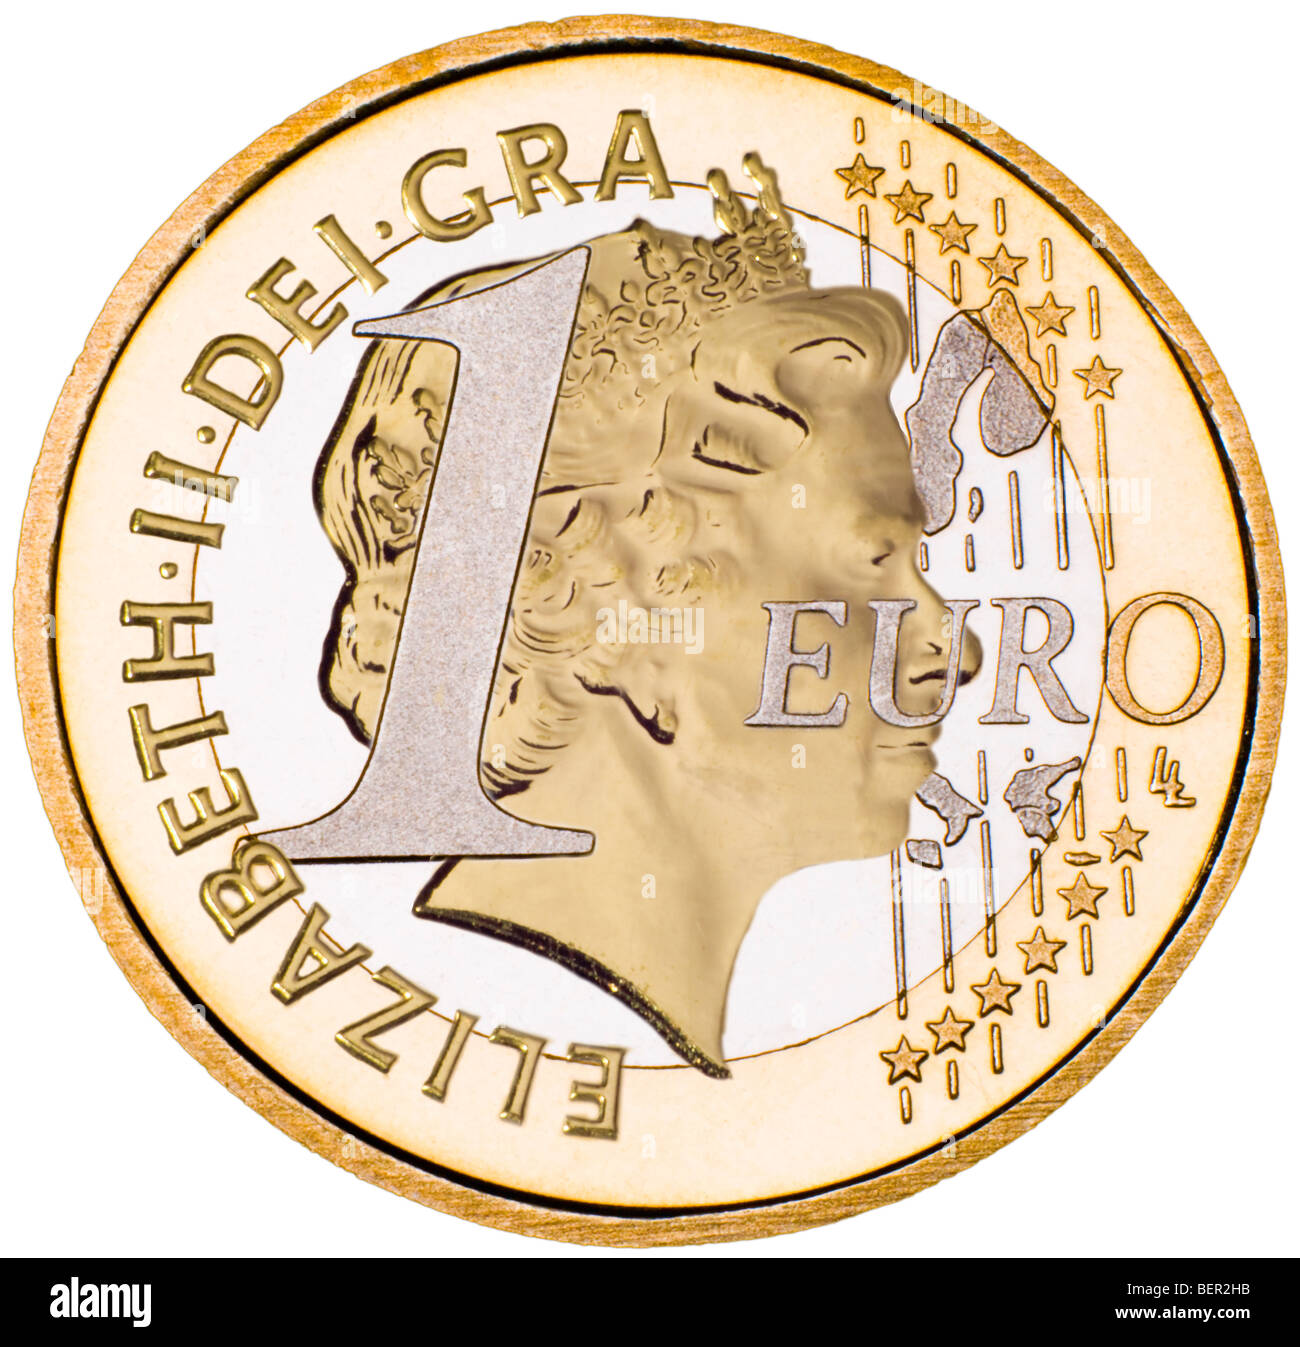 Composite One Euro / British coin (Queen's head from half sovereign) - Stock Image